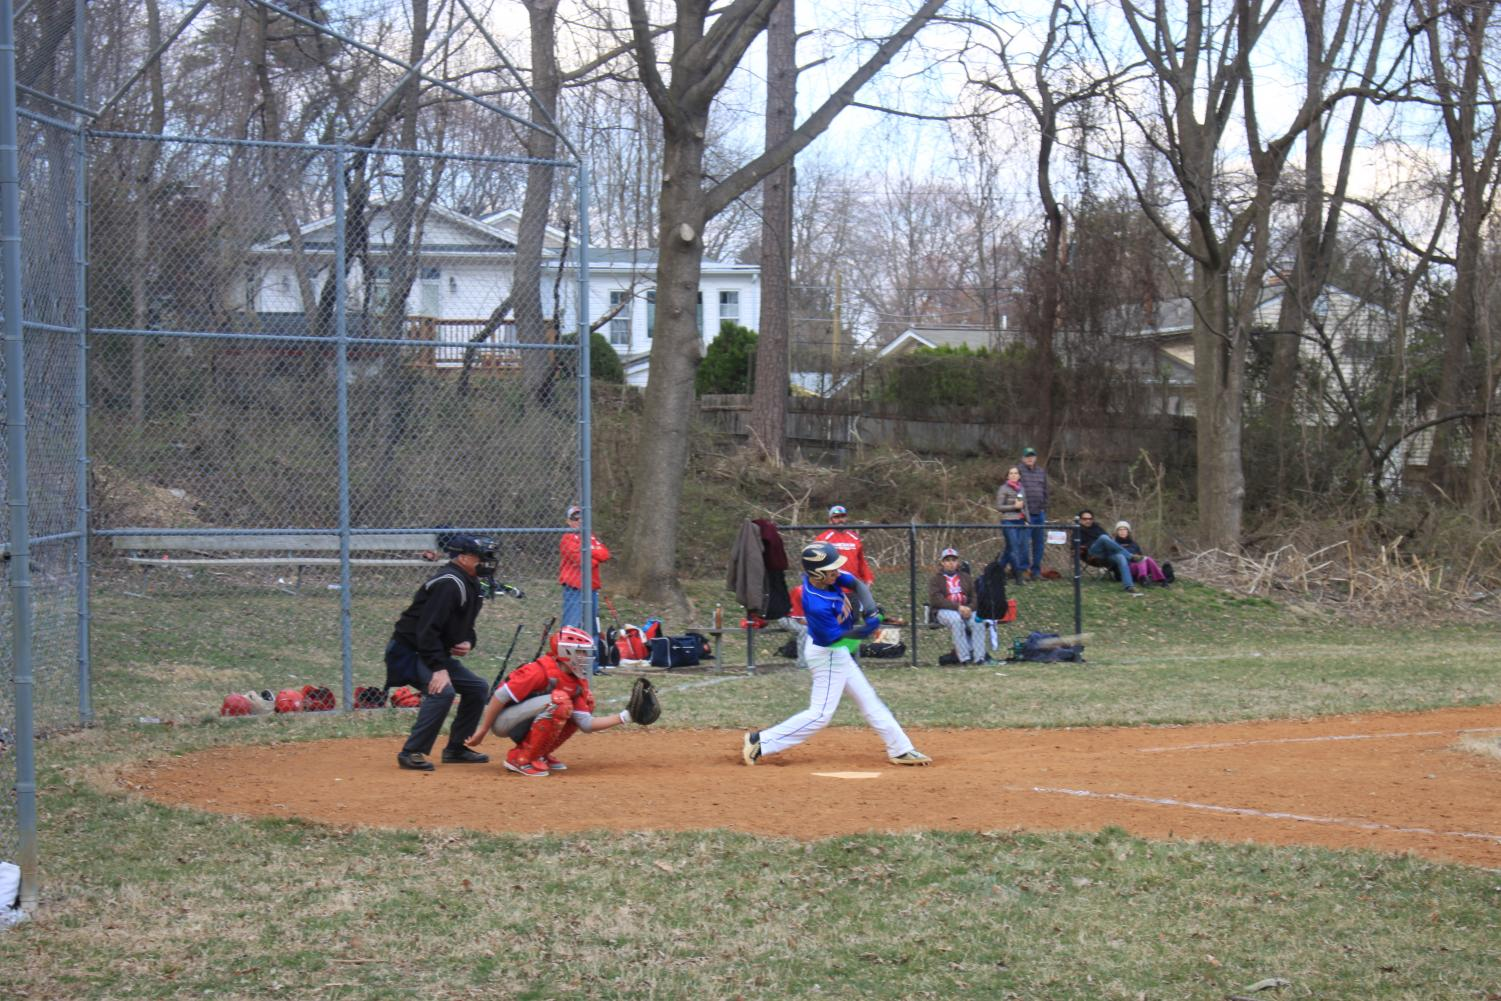 The varsity baseball team ended their season with a semifinal loss to St. Anselm's, finishing the season at 6-3.